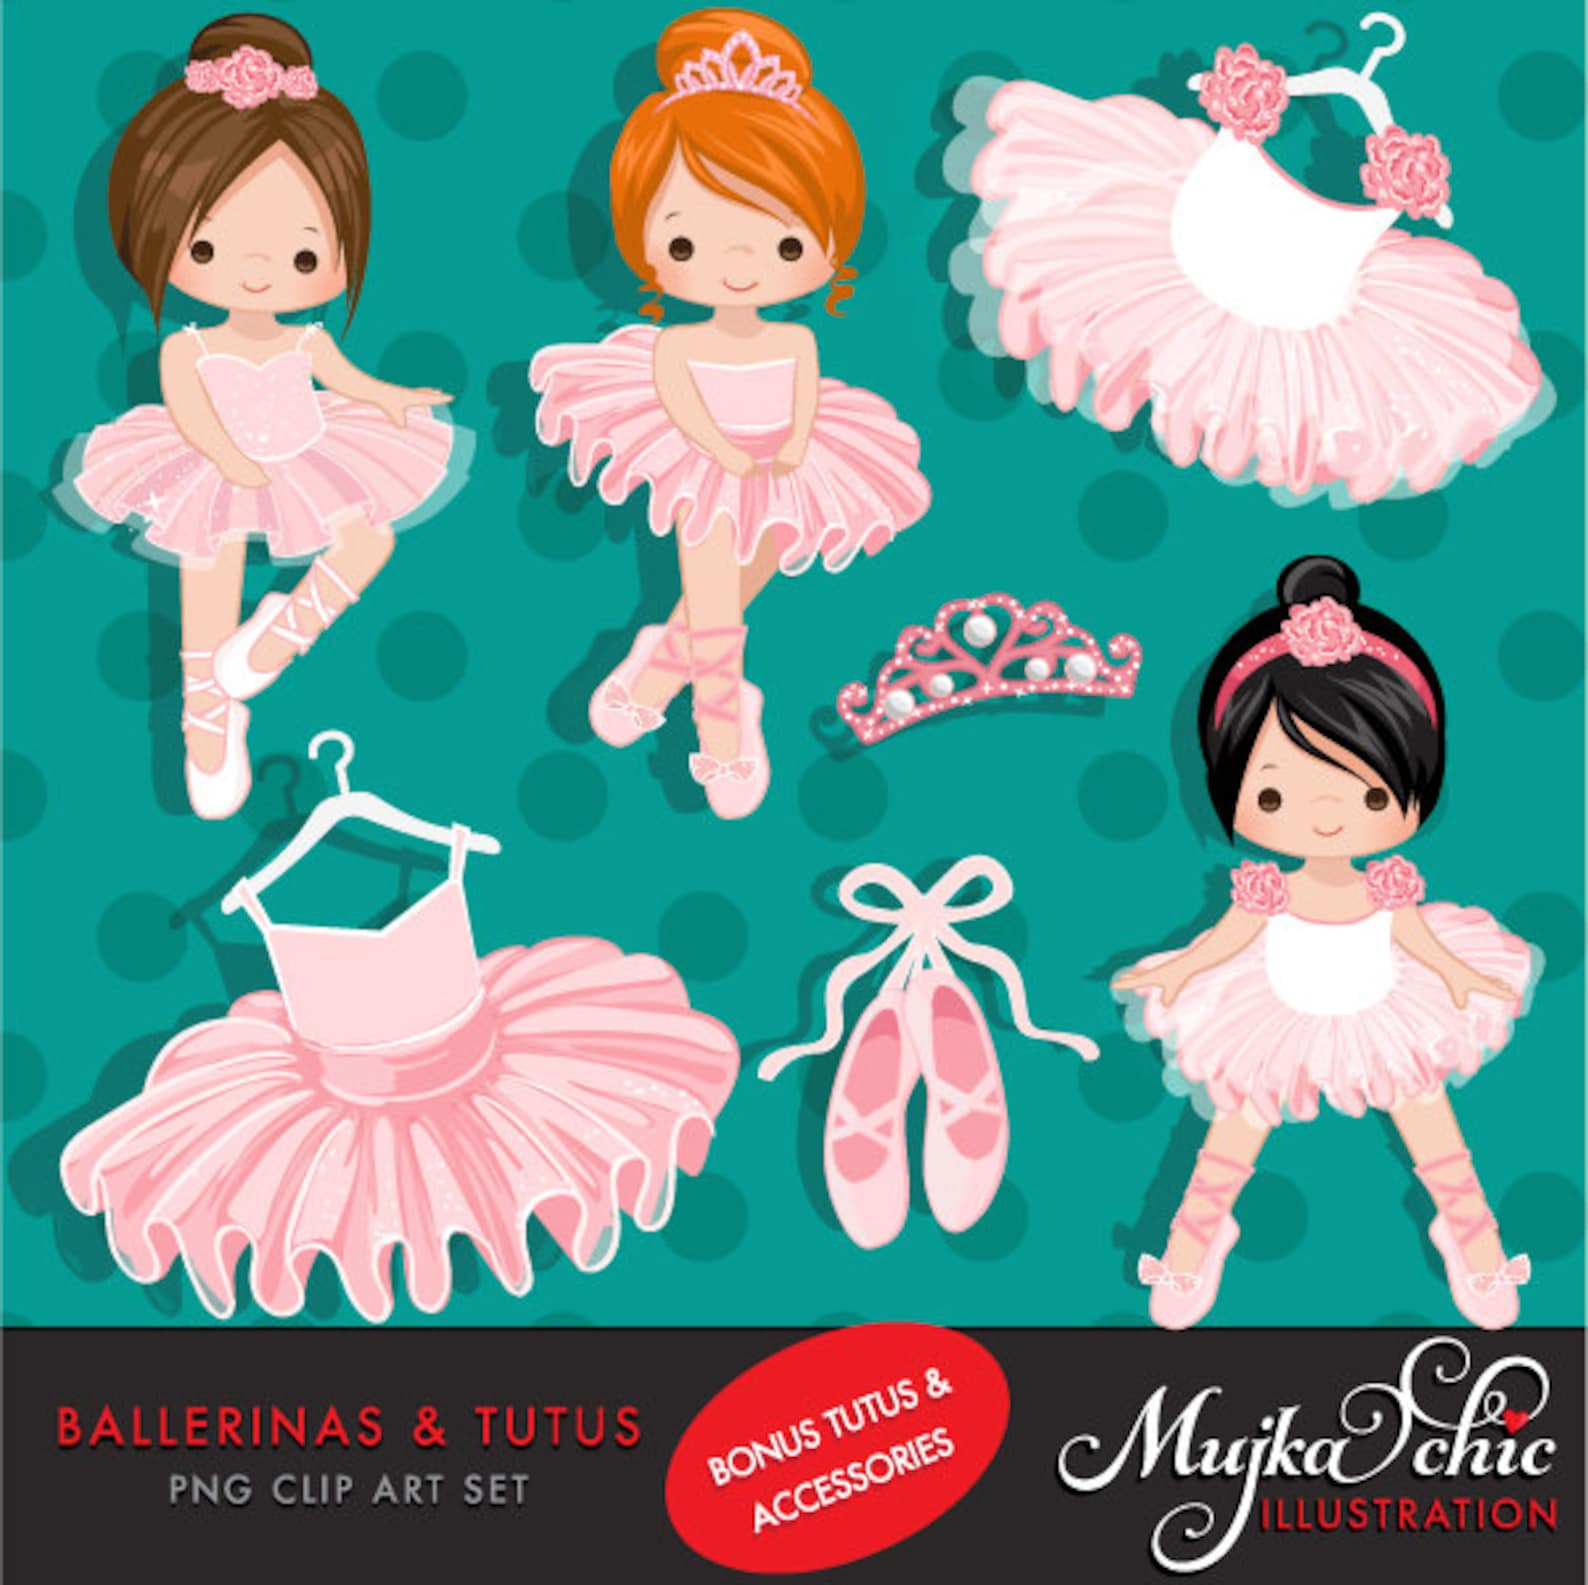 ballerina clipart with cute characters, pink tutu, ballet shoes graphics, ballet school, tiara, ballet dress, invitation, embroi